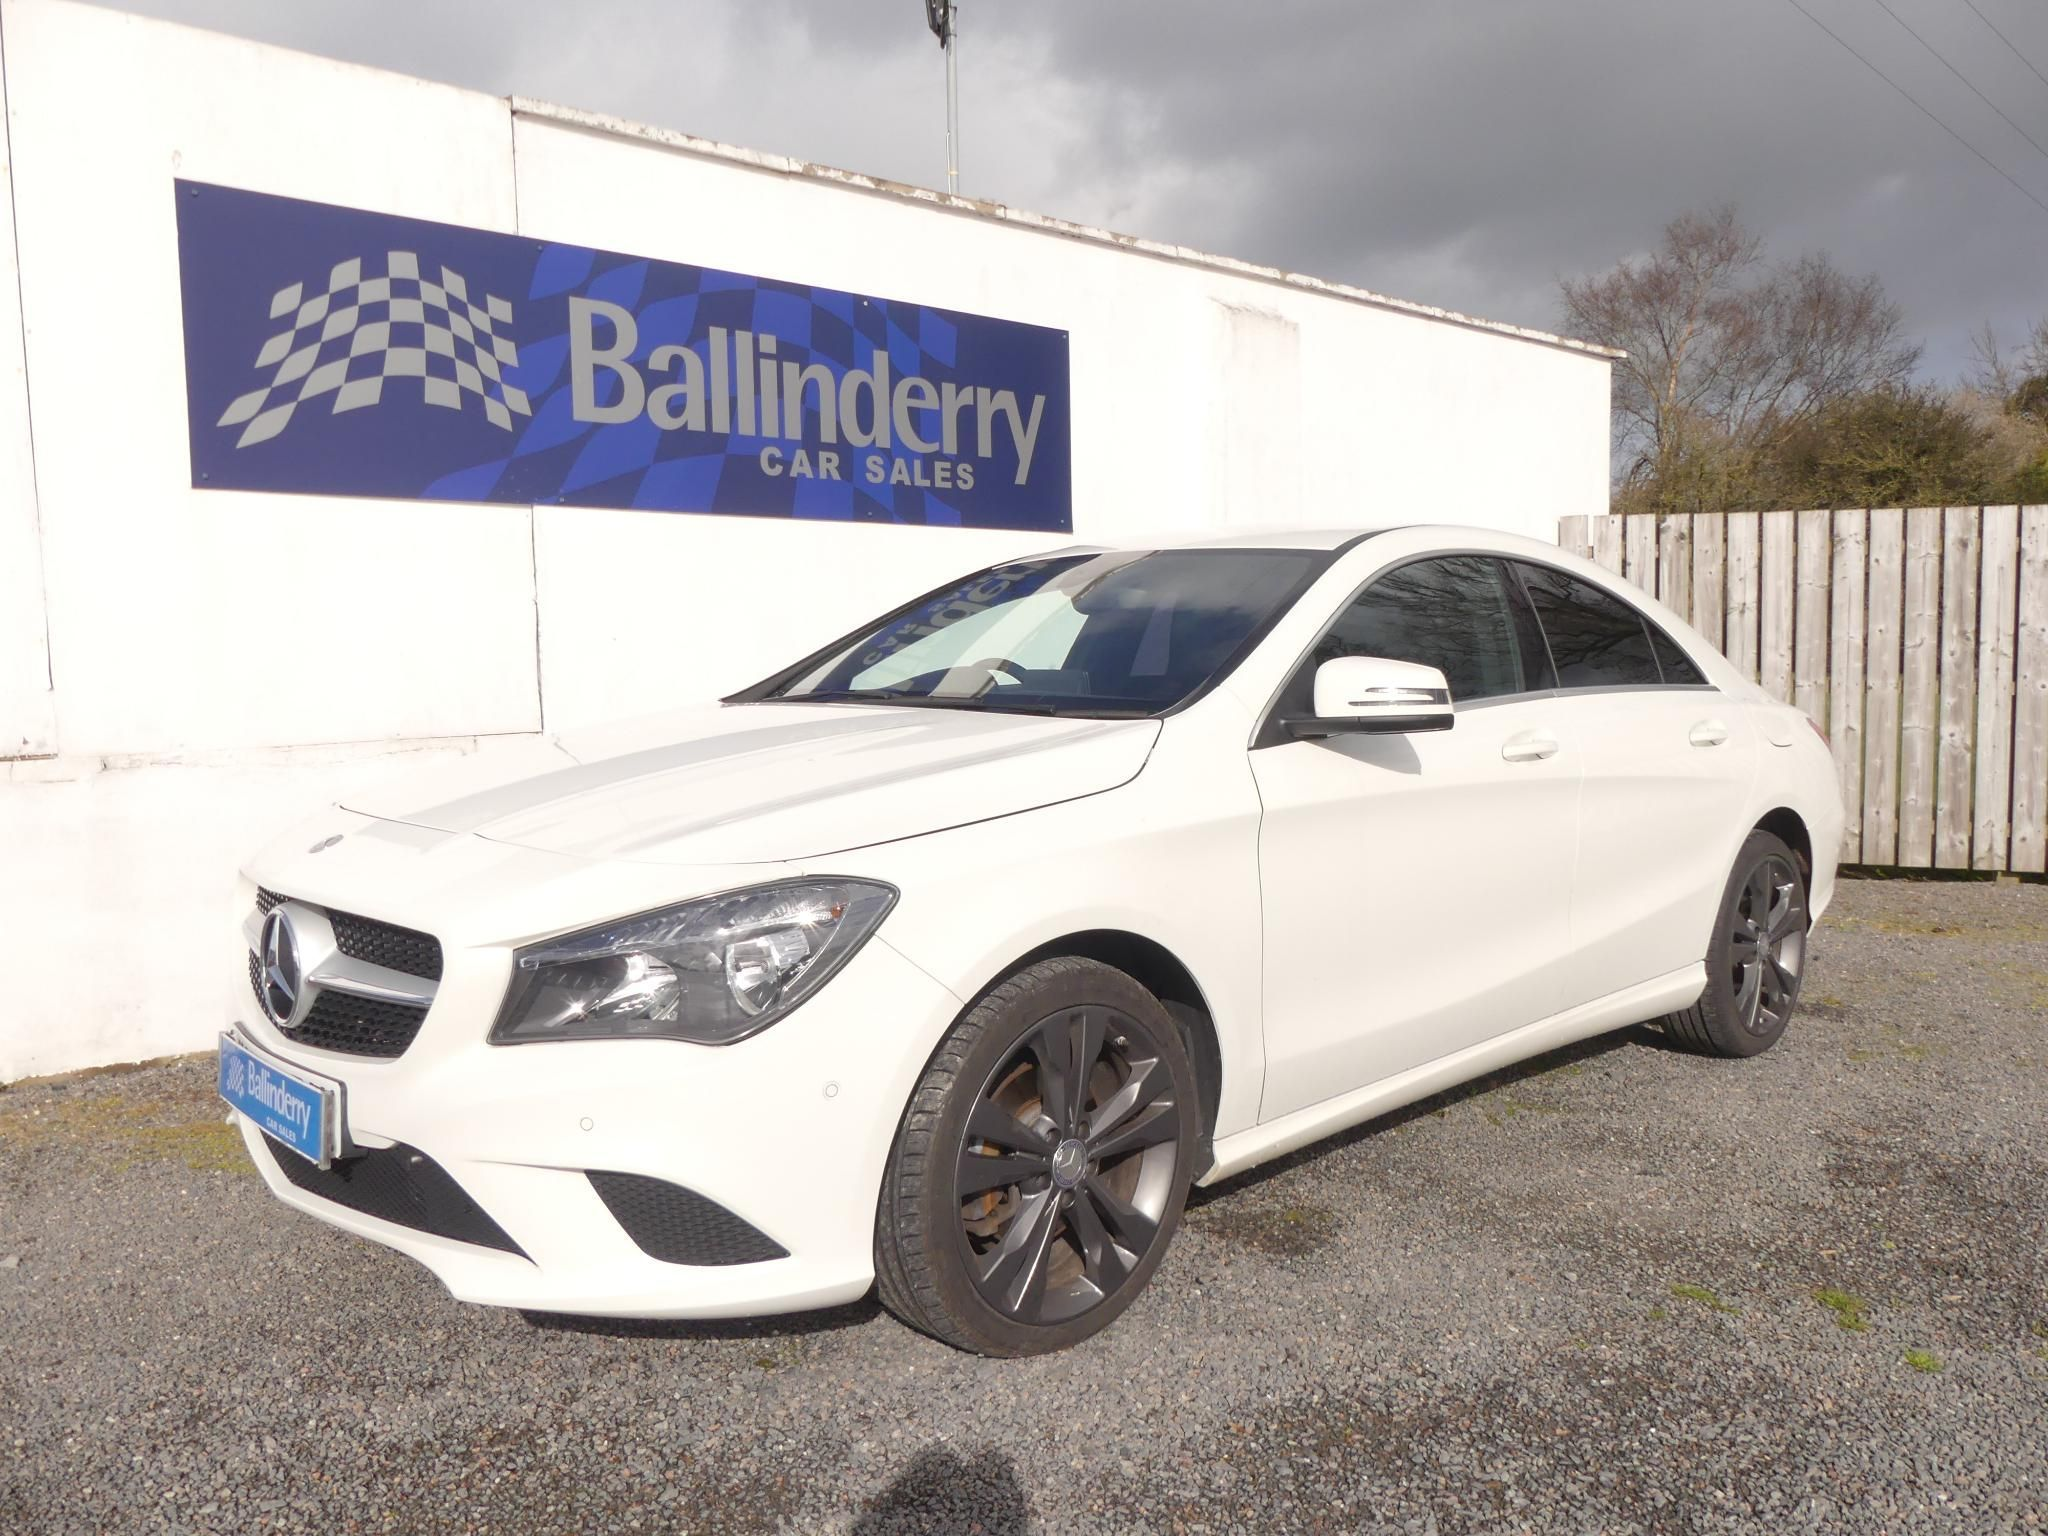 2015 MERCEDES BENZ CLA Class 2.1 CLA200 Sport (s/s) Diesel Manual BLUE TOOTH–18″ ALLOYS-£20 TAX – Ballinderry Car Sales Moira